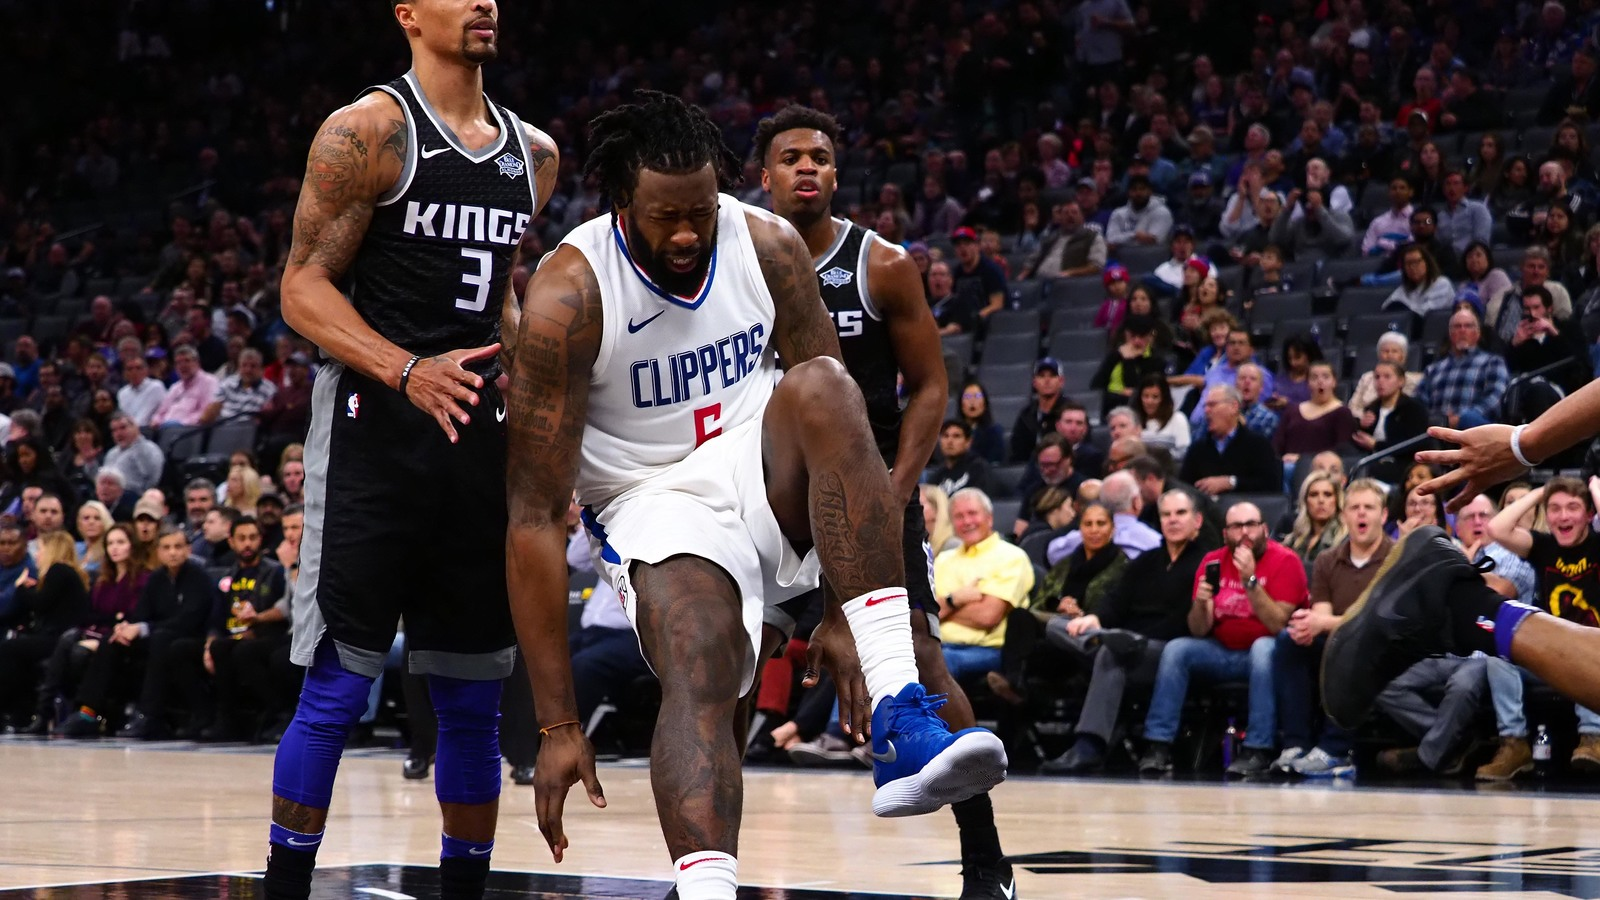 Jan 11 2018 Sacramento CA USA LA Clippers Center DeAndre Jordan 6 Comes Down After A Dunk Against The Kings During Second Quarter At